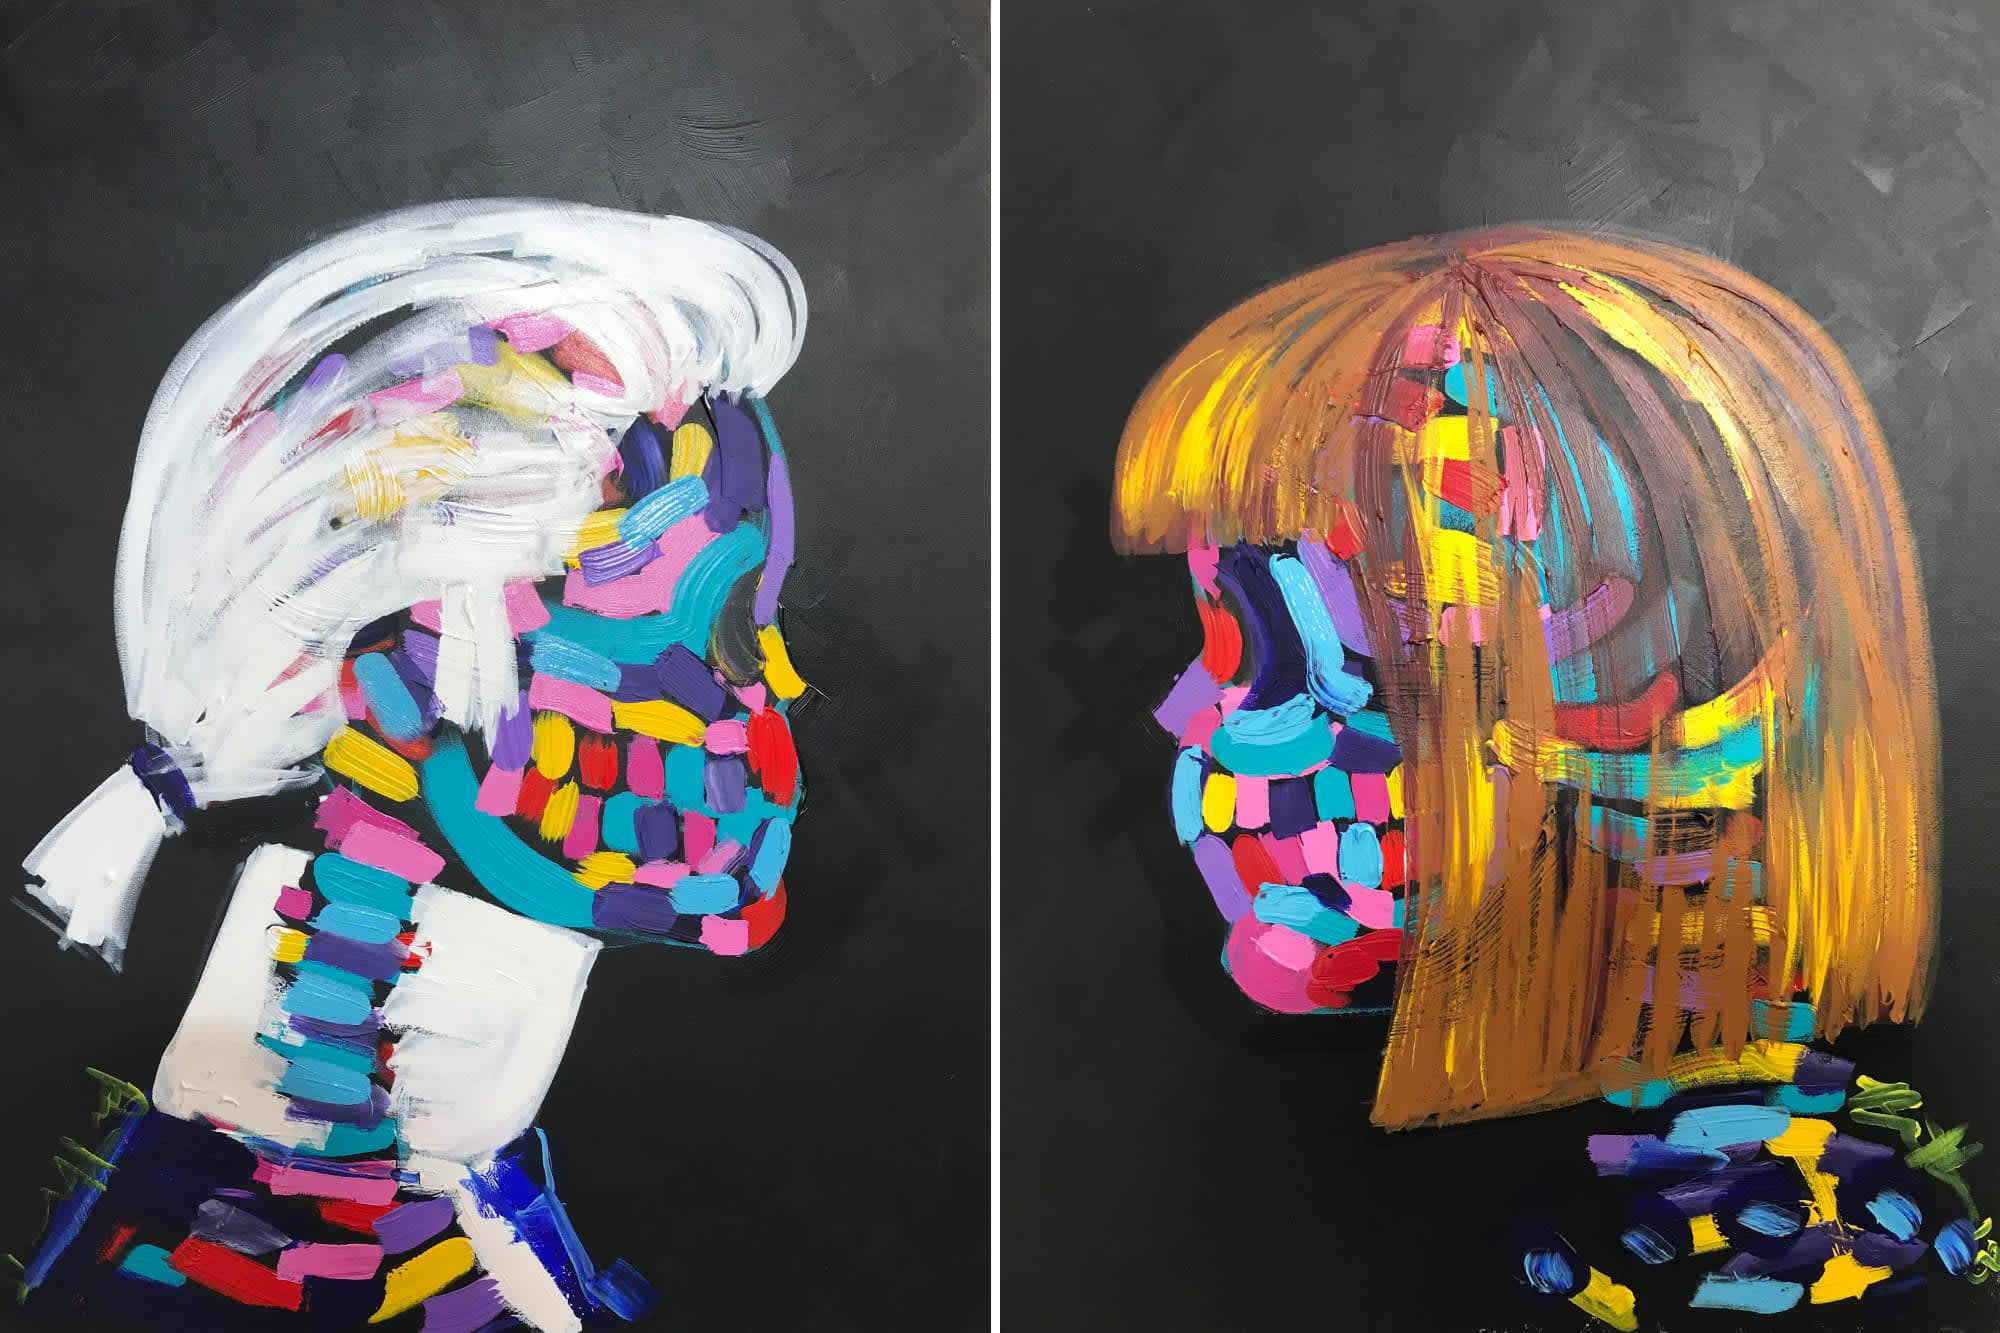 Bringing Street Art Inside: 7 Graffiti Inspired Artworks Perfect For The Home, From spray paint to urban prints, we outline...